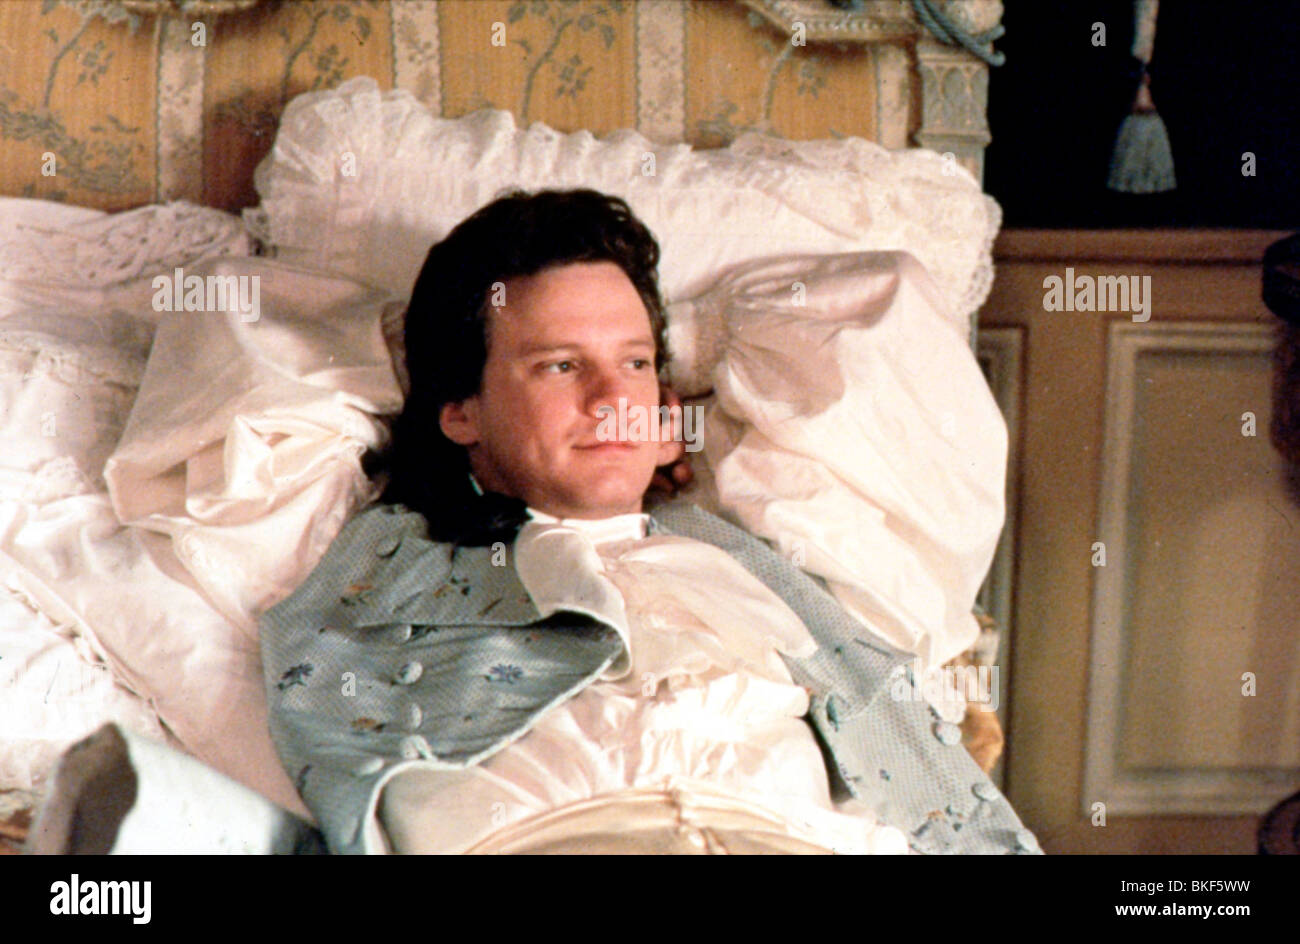 VALMONT -1989 COLIN FIRTH - Stock Image